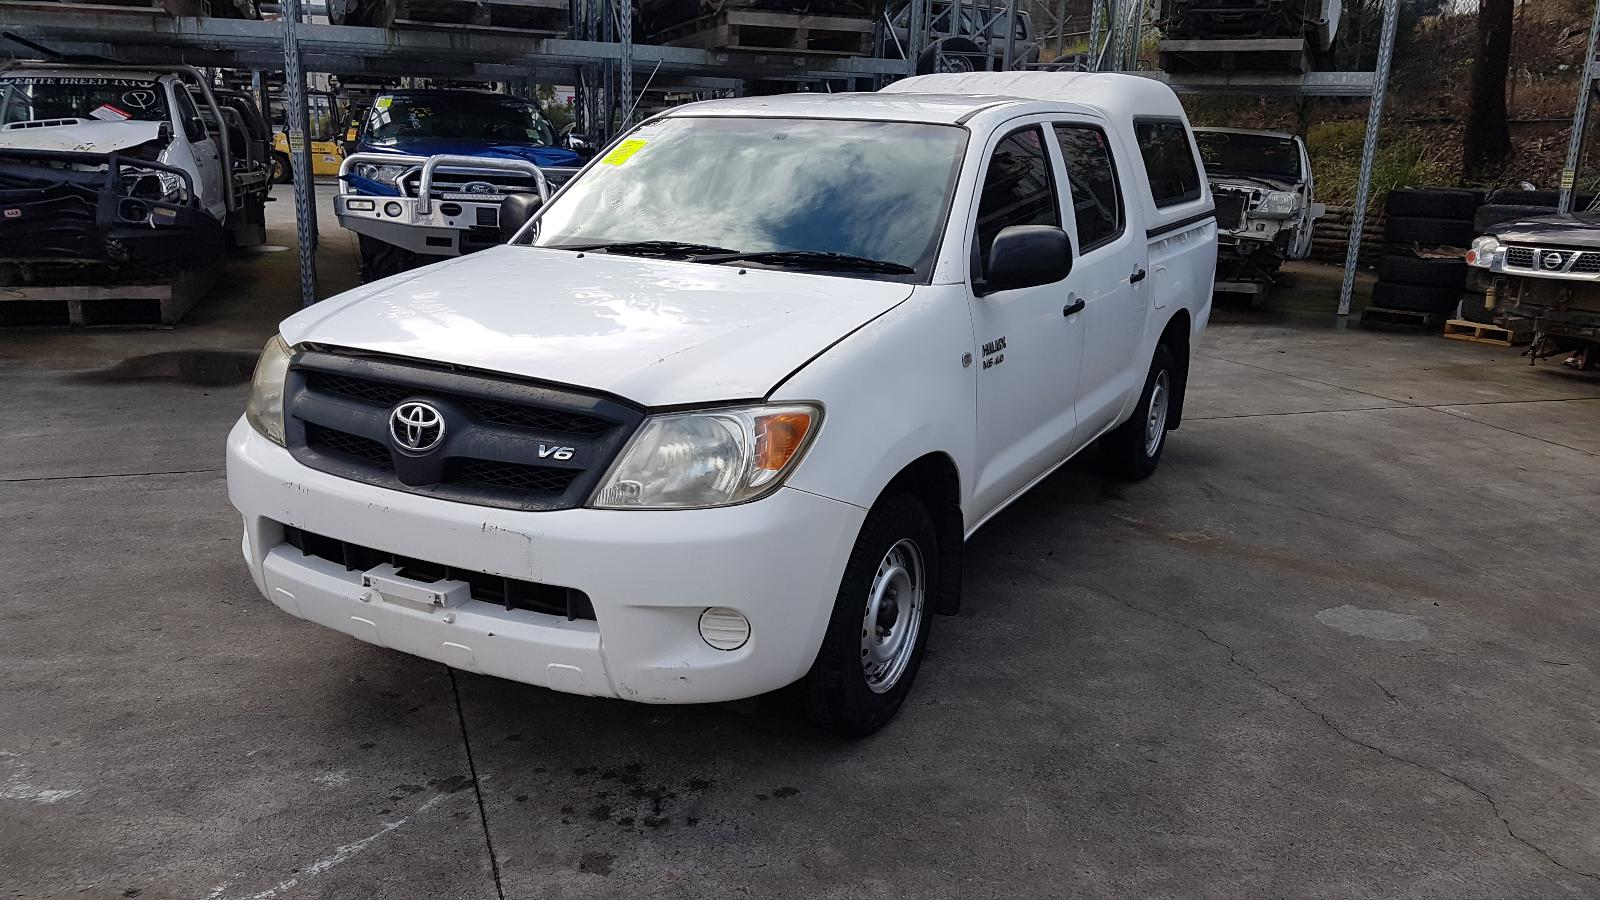 Image for a Toyota Hilux 2007 4 Door Suv